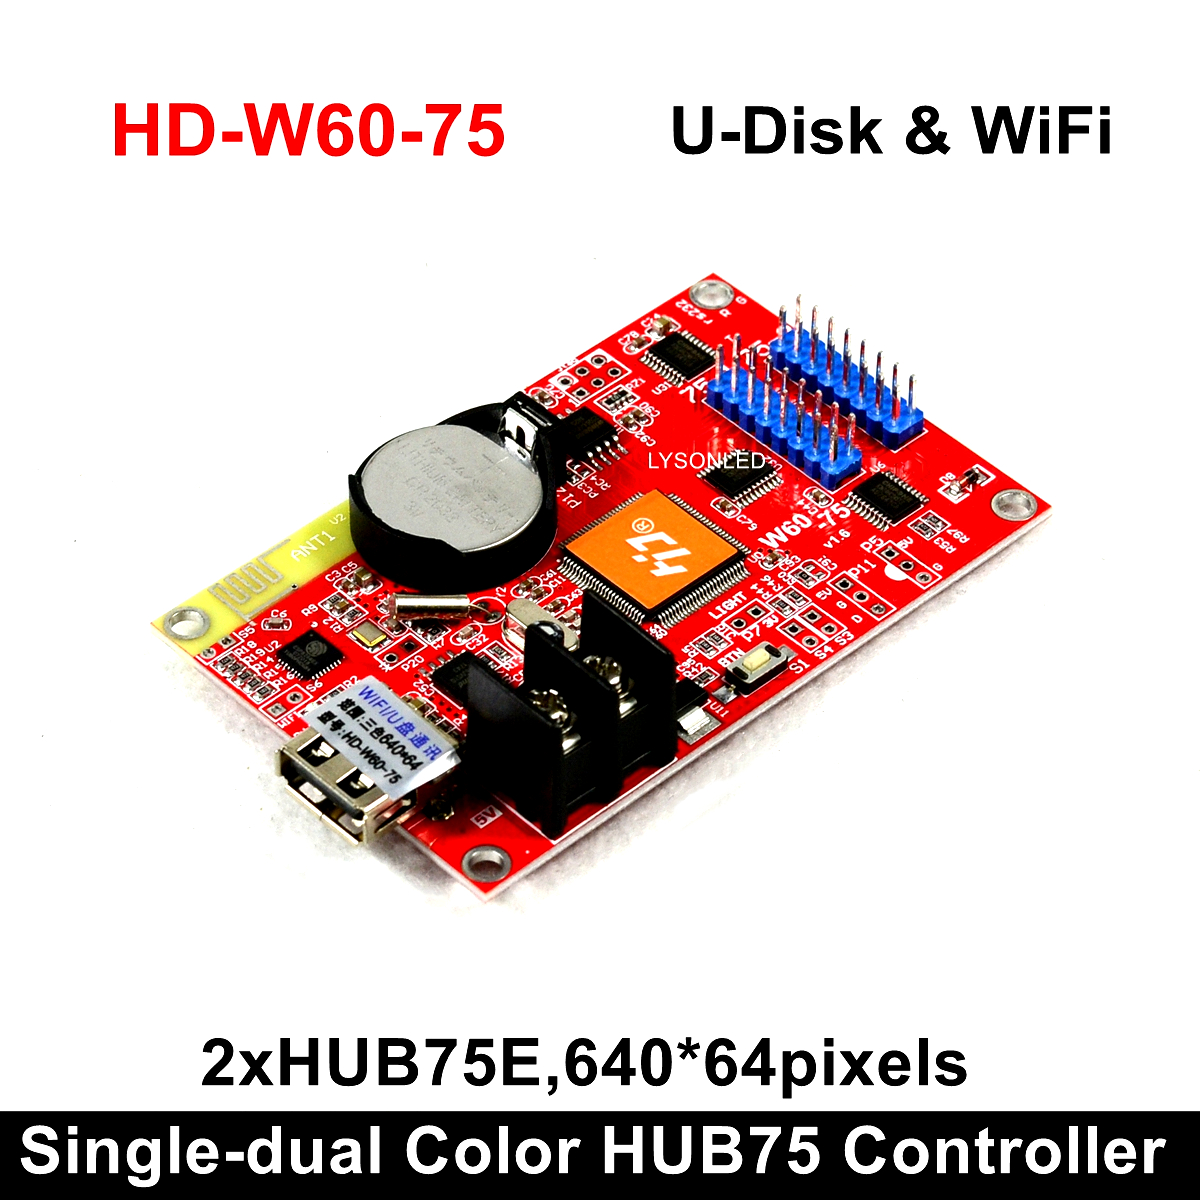 HD-W60-75 (2x Hub75B Ports) Small Graphic LED Control Card Compatiable With Full Color P4/P5/P6/P8/P10 LED Modules